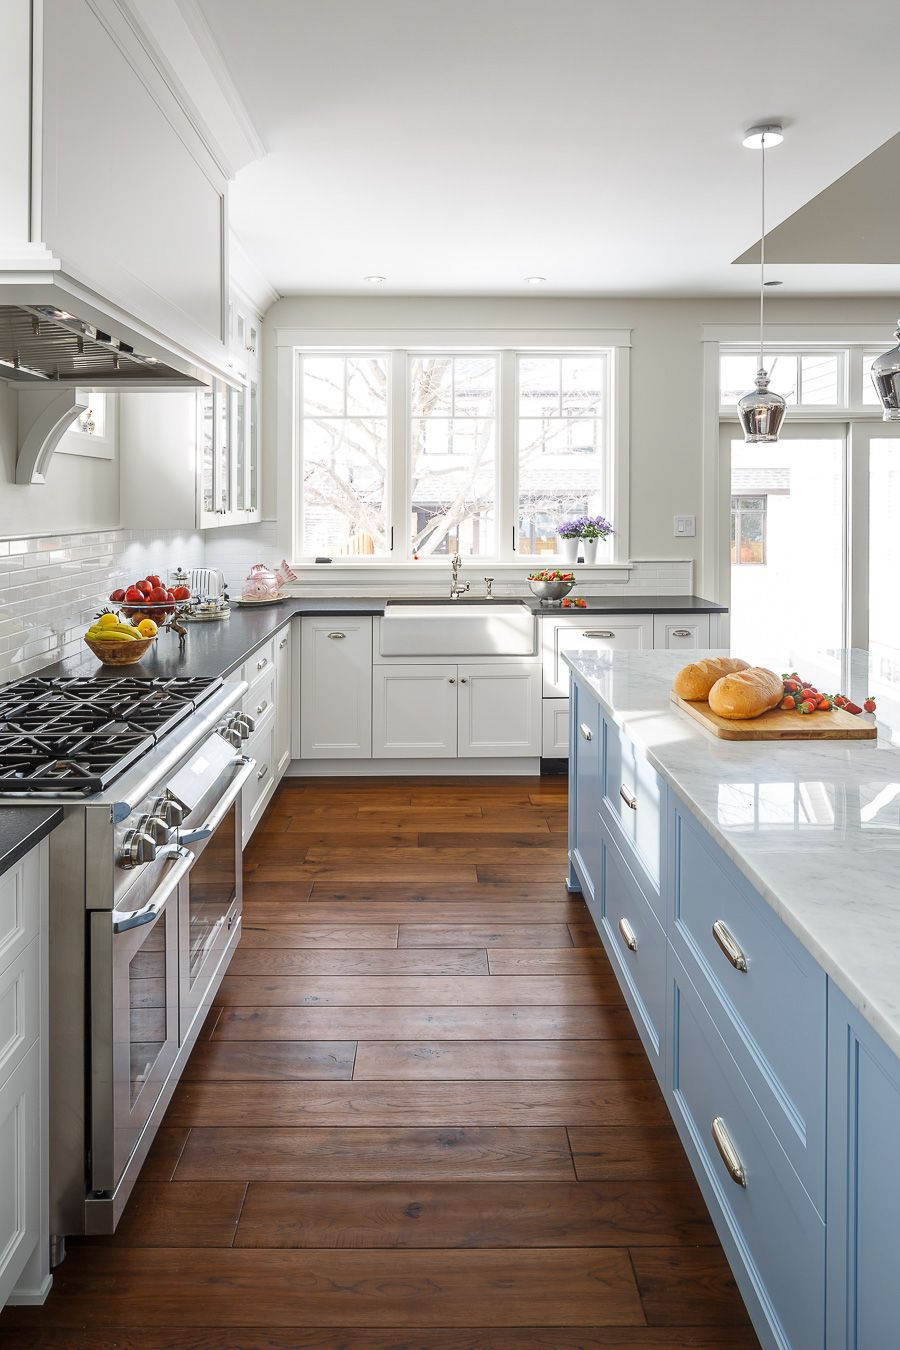 Pin by Debbie Johnson on Kitchen | Pinterest | Kitchens, House and ...